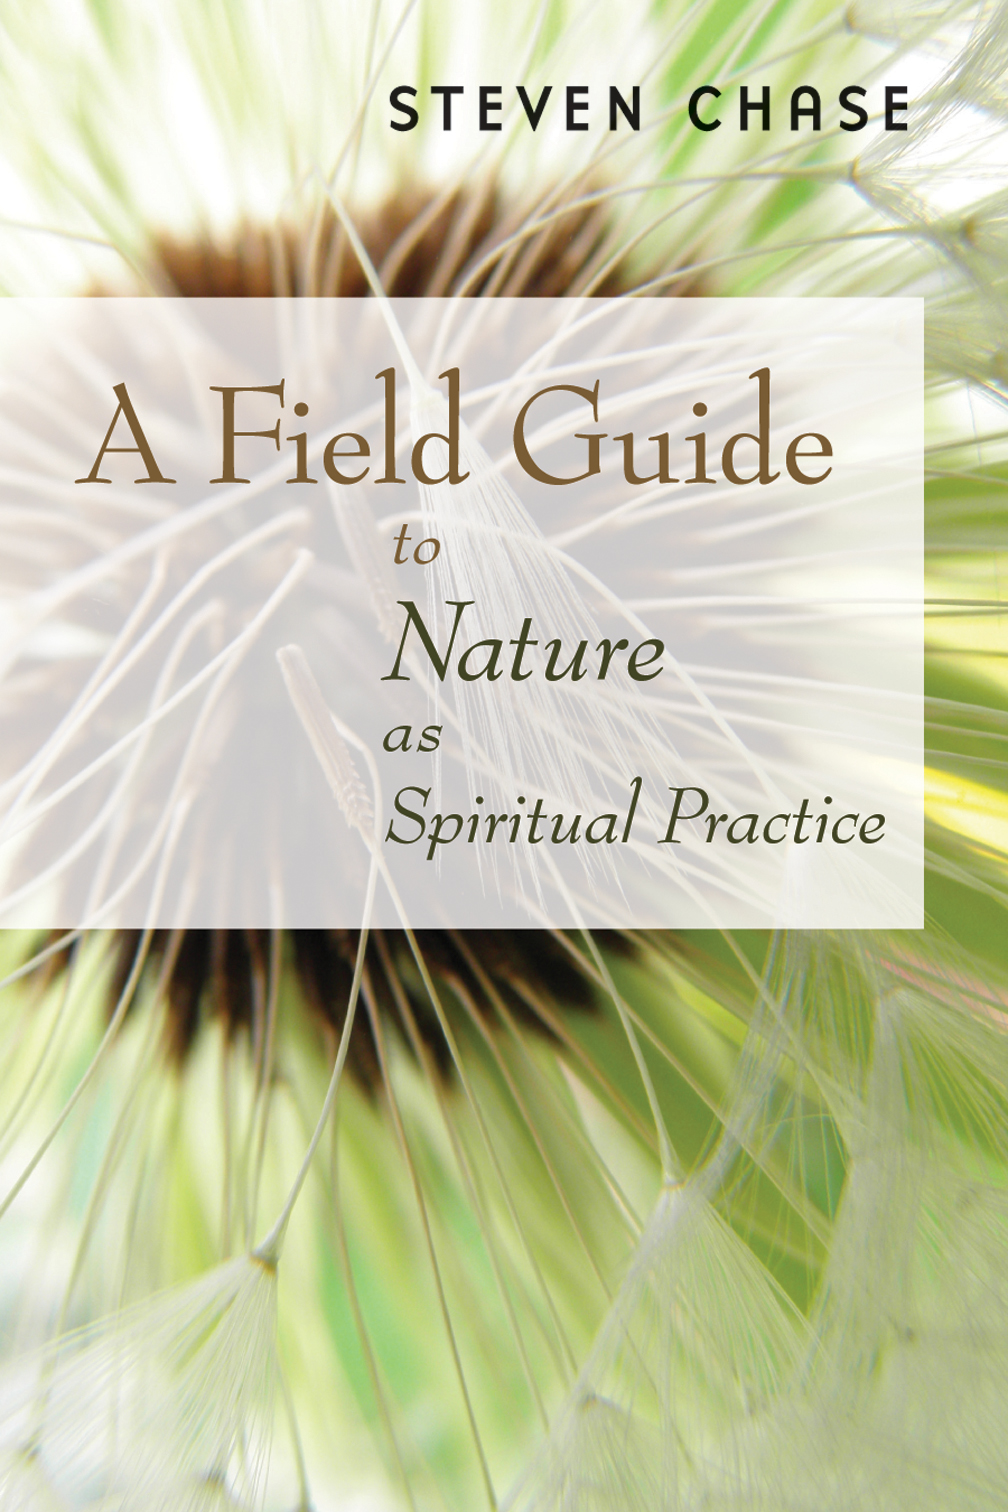 A Field Guide to Nature as Spiritual Practice